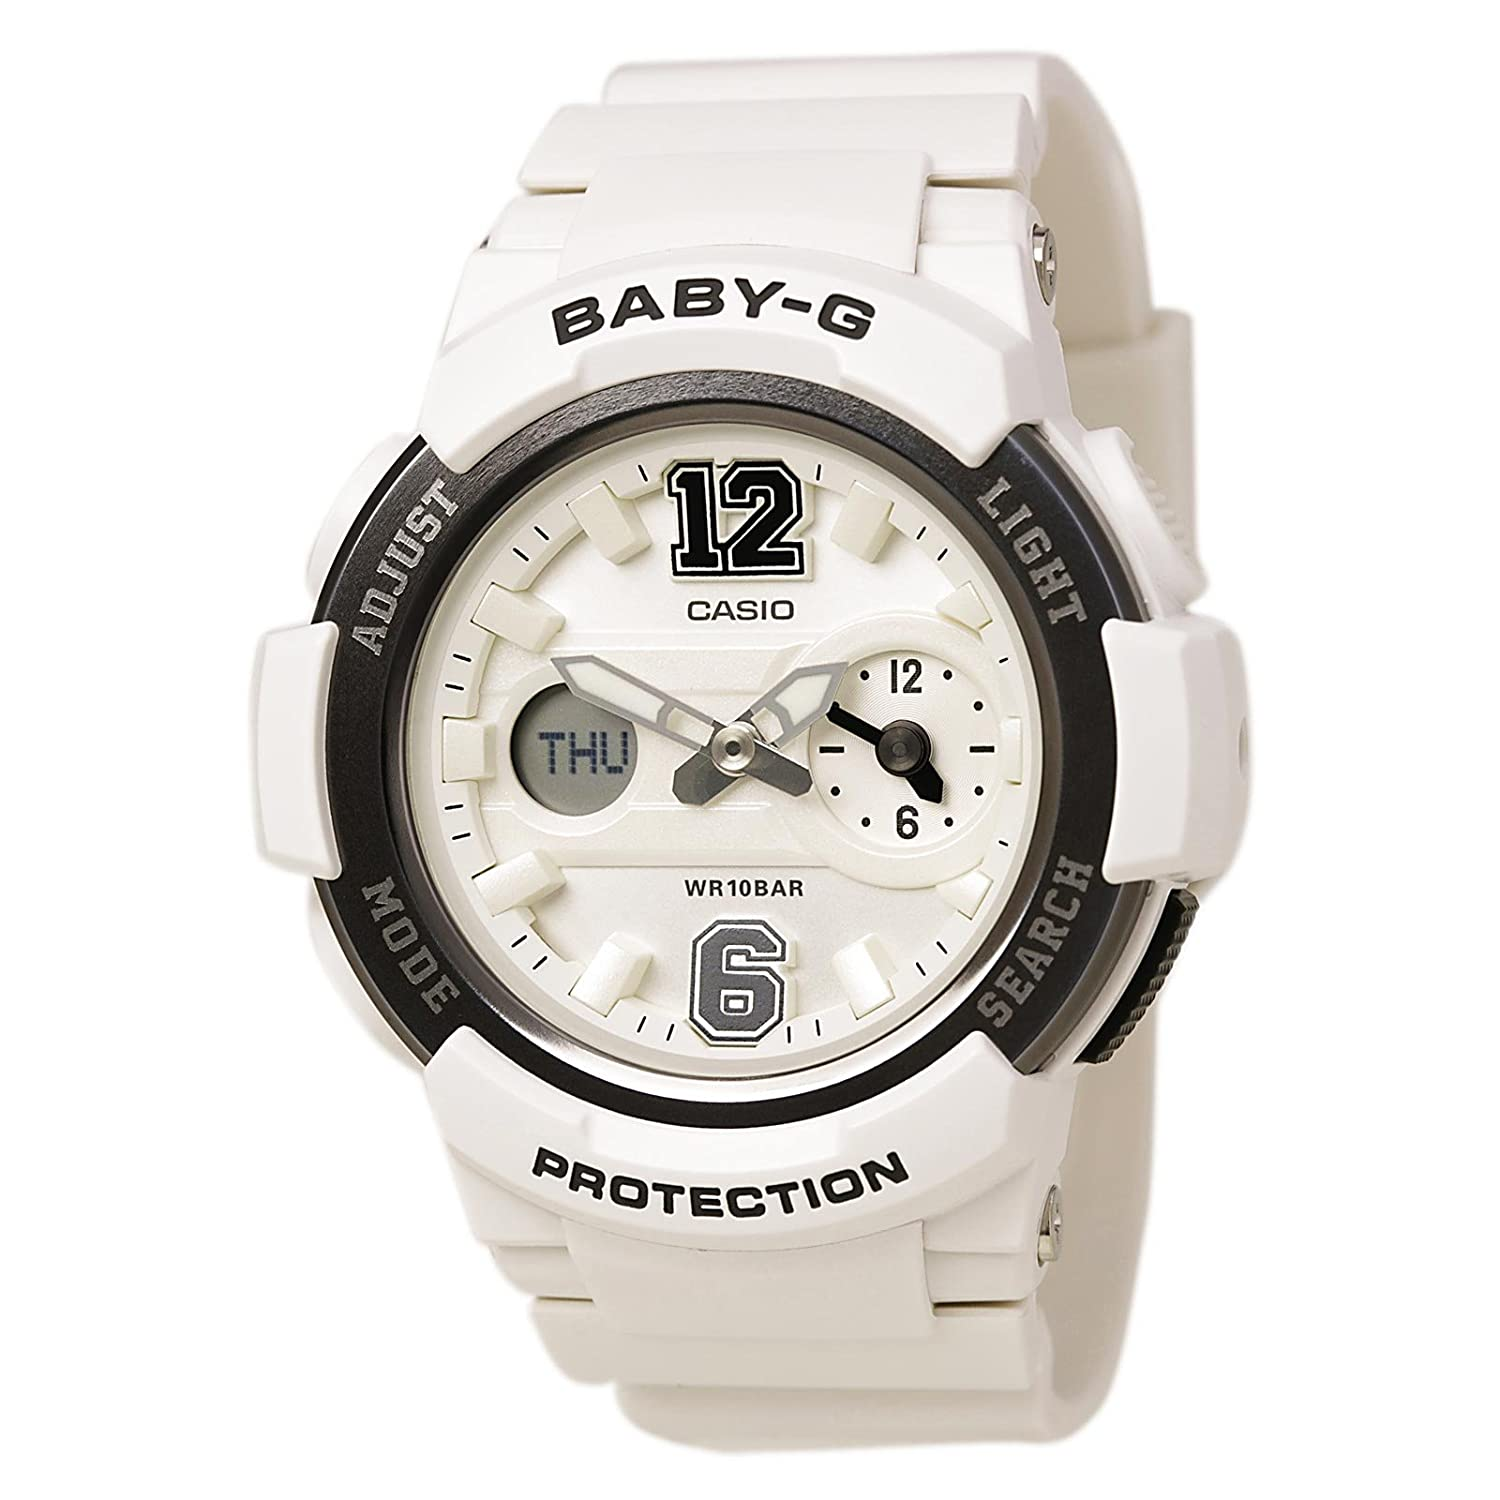 G-Shock Women s BGA-210-7B1CR White Watch